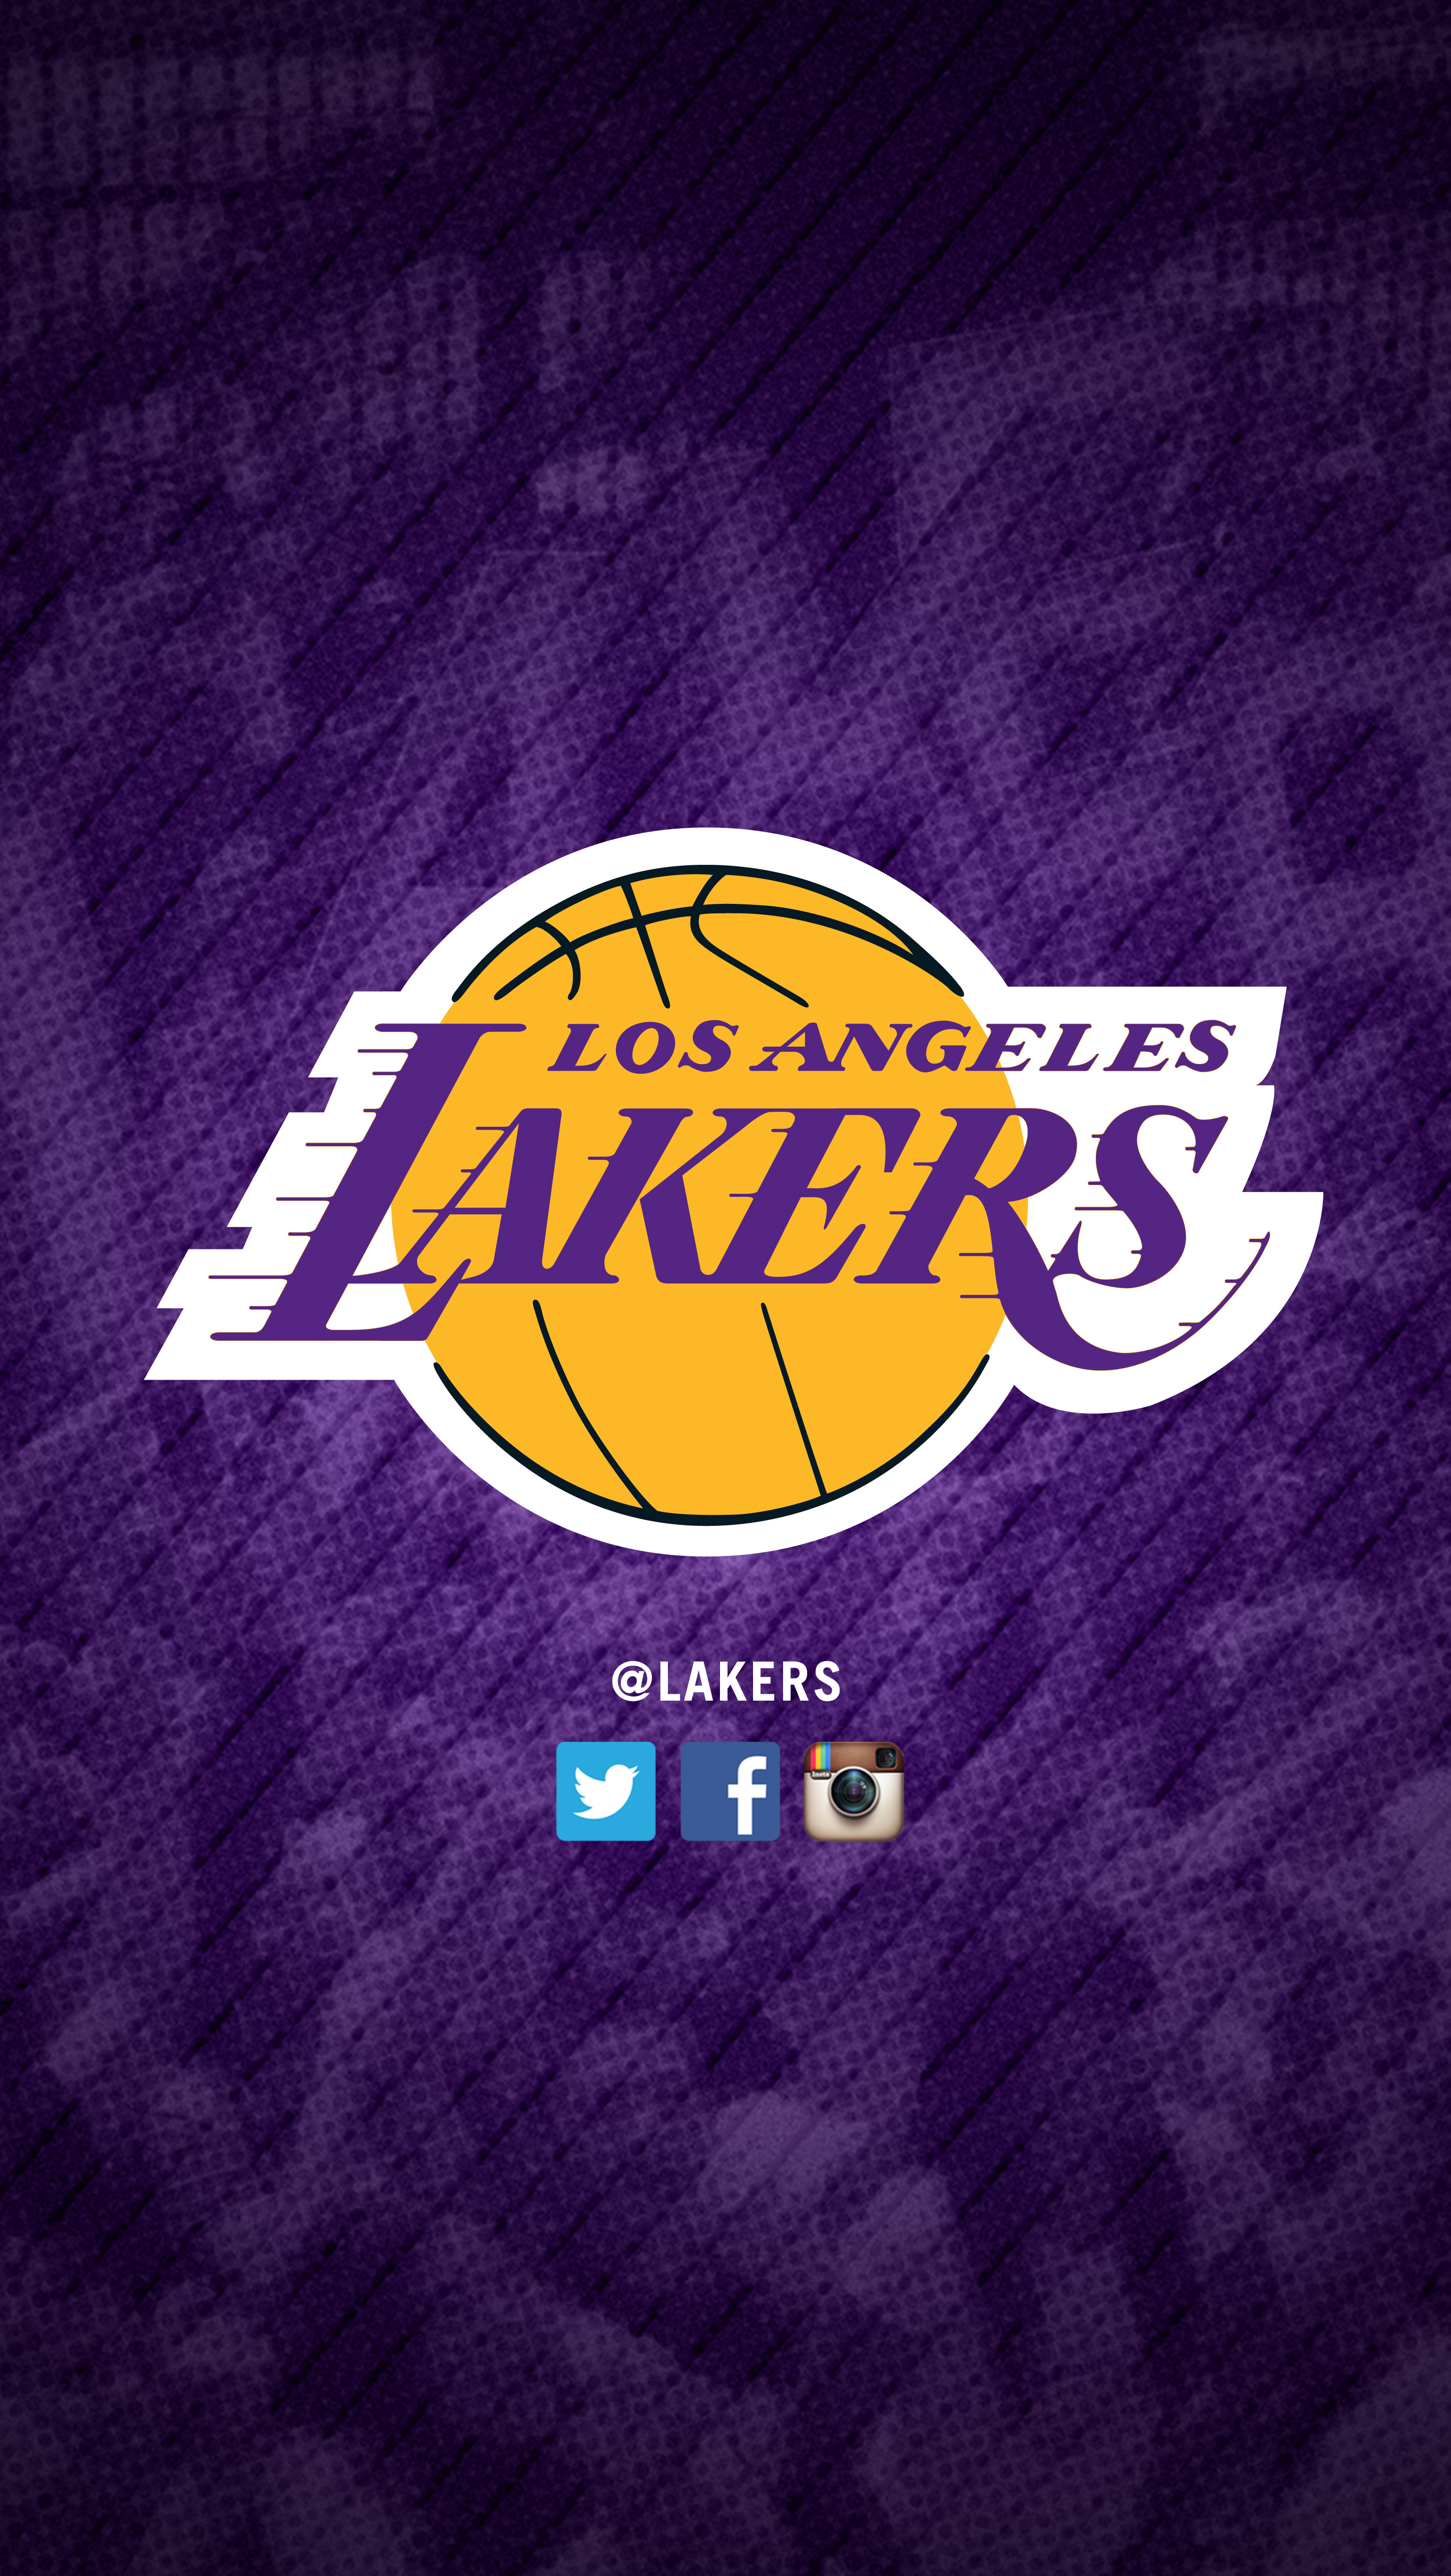 lakers iphone wallpaper lakers mobile wallpapers los angeles lakers 12560